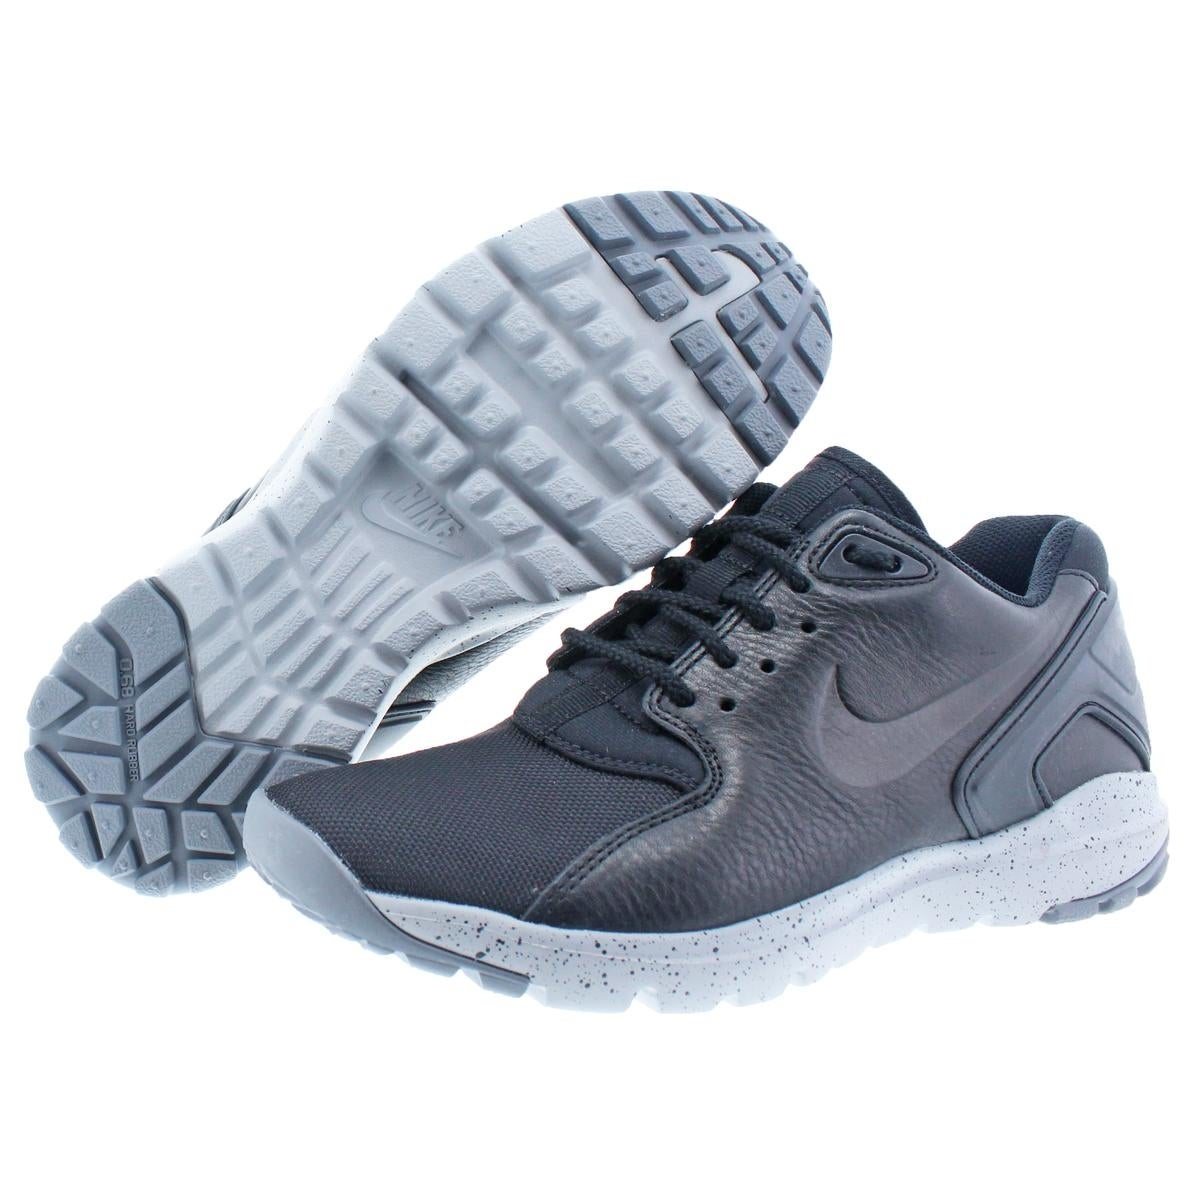 huge discount a3d91 b3894 Shop Nike Mens Koth Ultra Low Trail Running Shoes Speckled Hard Rubber - 7  medium (d) - Free Shipping Today - Overstock - 22132816